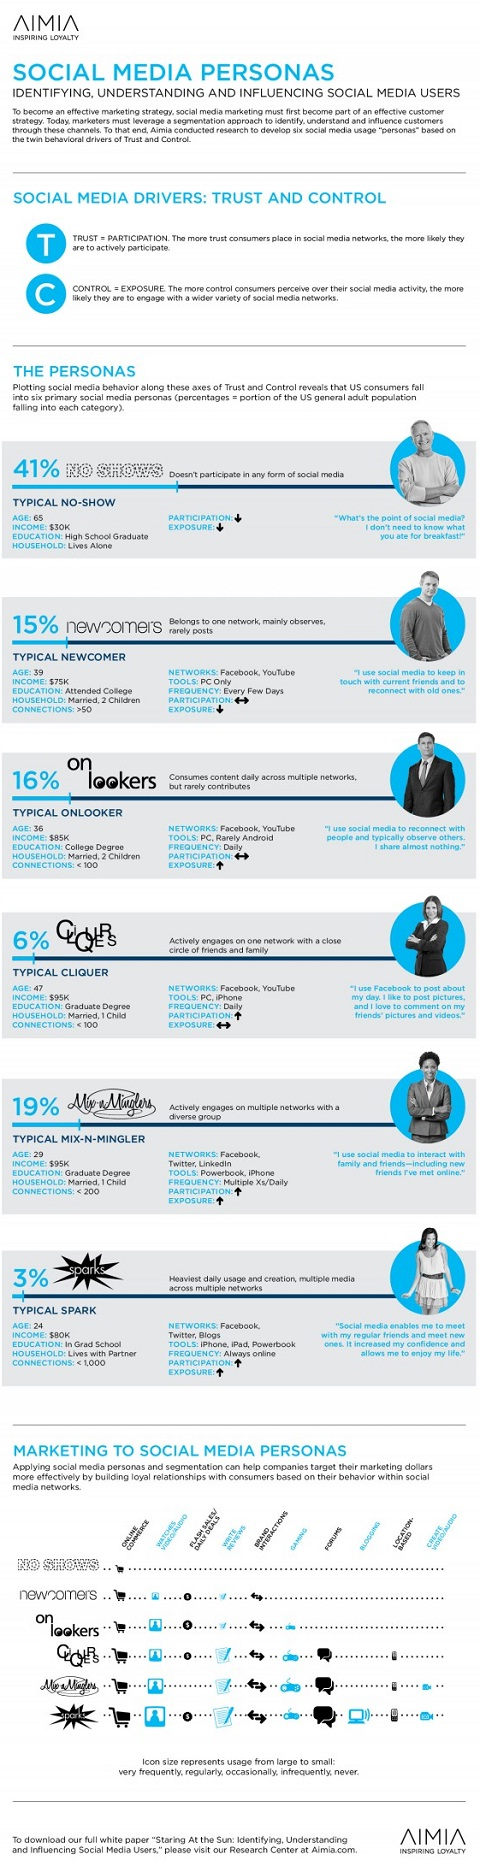 6 types of social user [infographic]